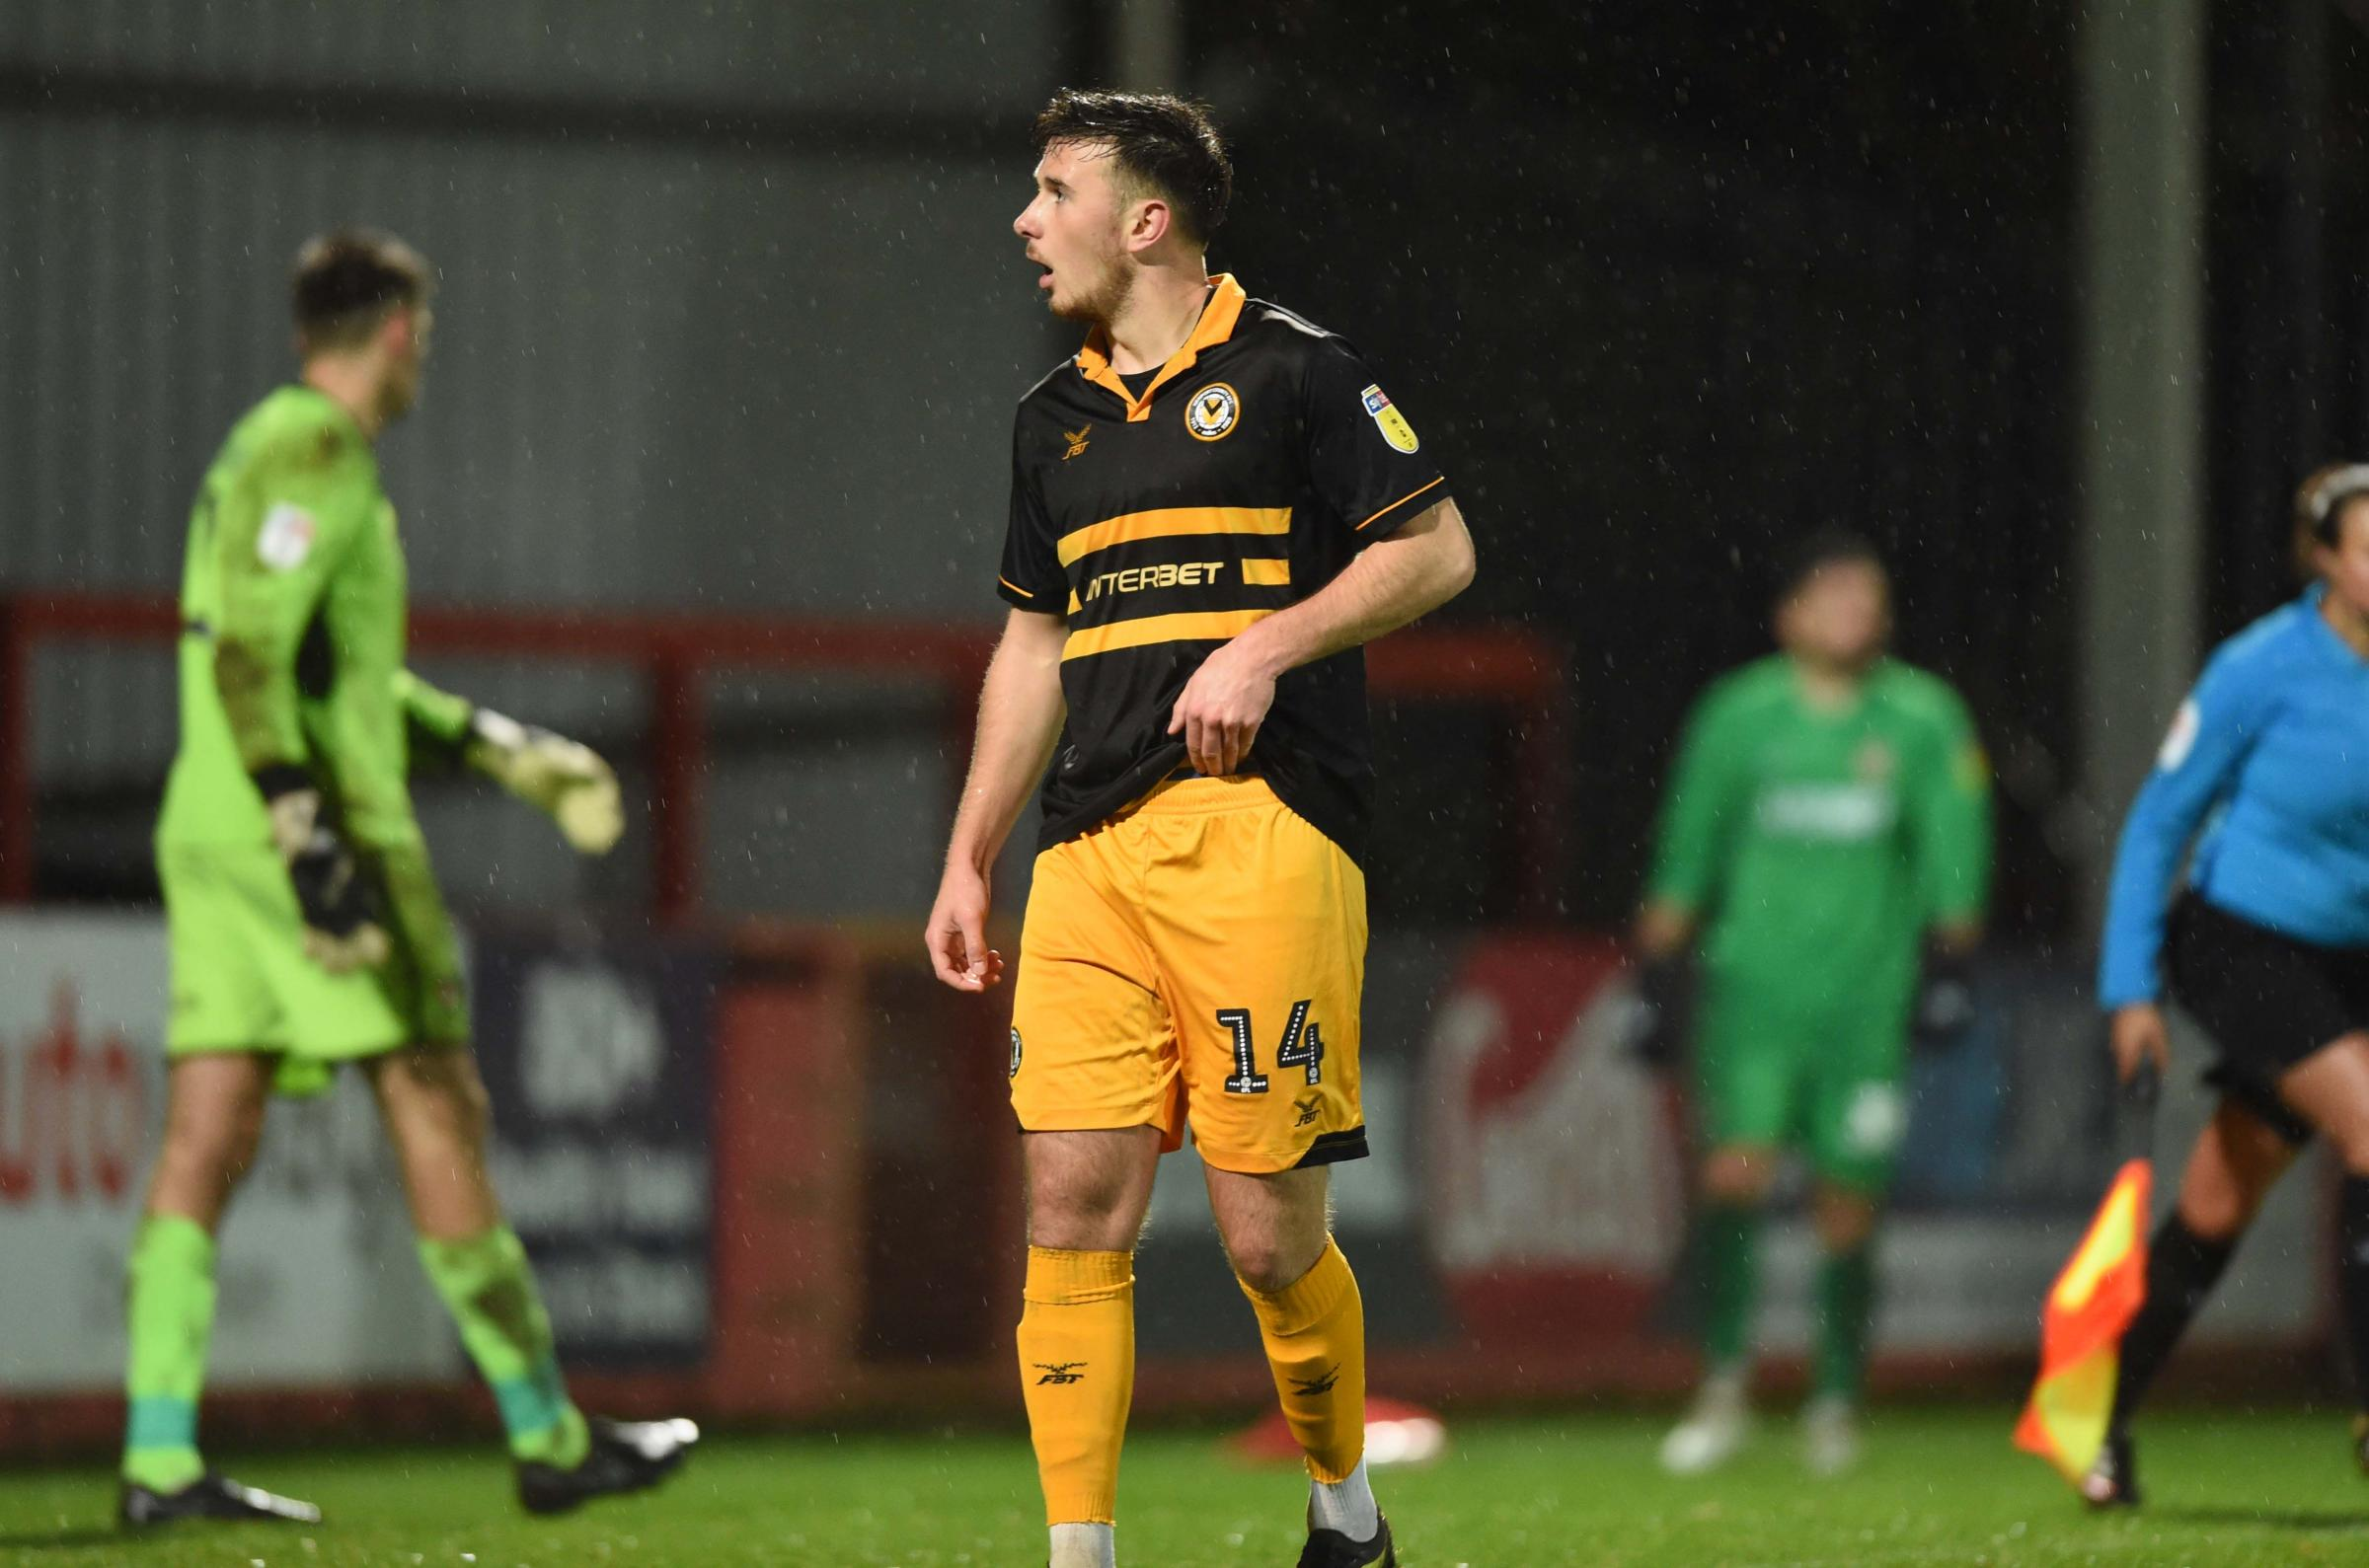 DEFEAT: Mark Harris saw his penalty saved as Newport County lost 7-6 in a shootout at Cheltenham Town to bow out of the Checkatrade Trophy on Tuesday. Pictures: Huw Evans Agency